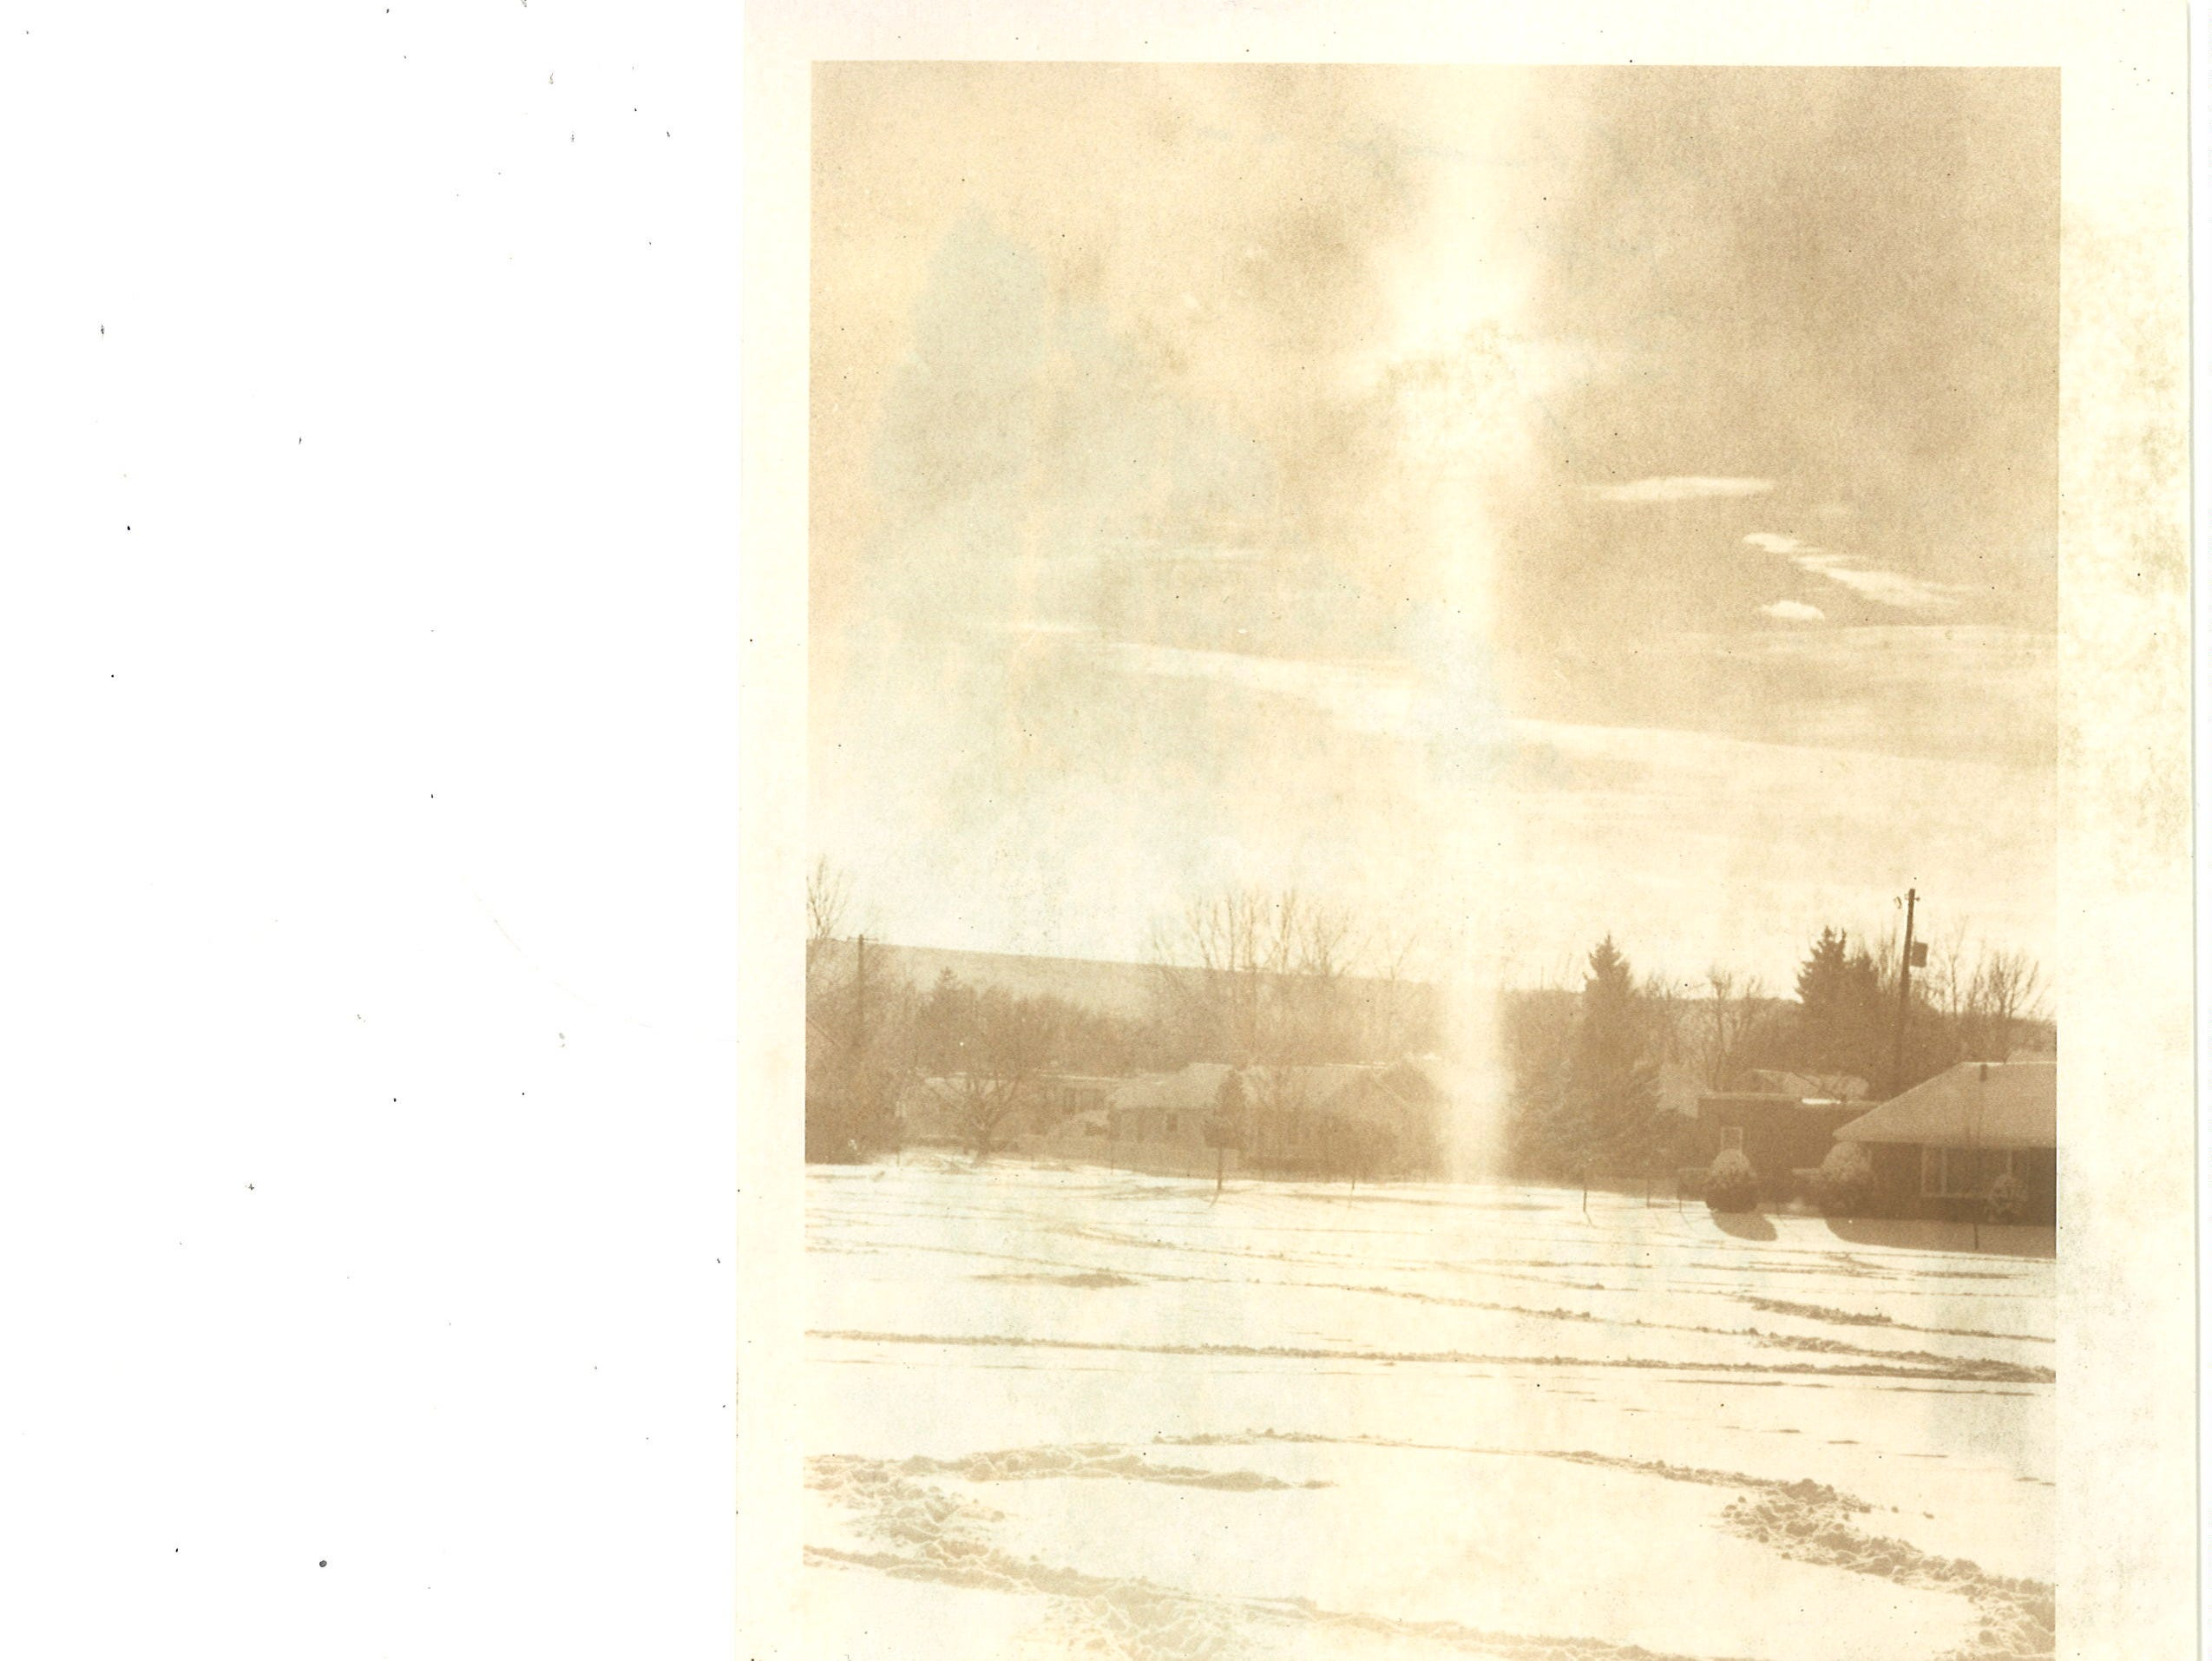 Life in Great Falls 40 years ago: The sun shines down on a snow covered Great Falls